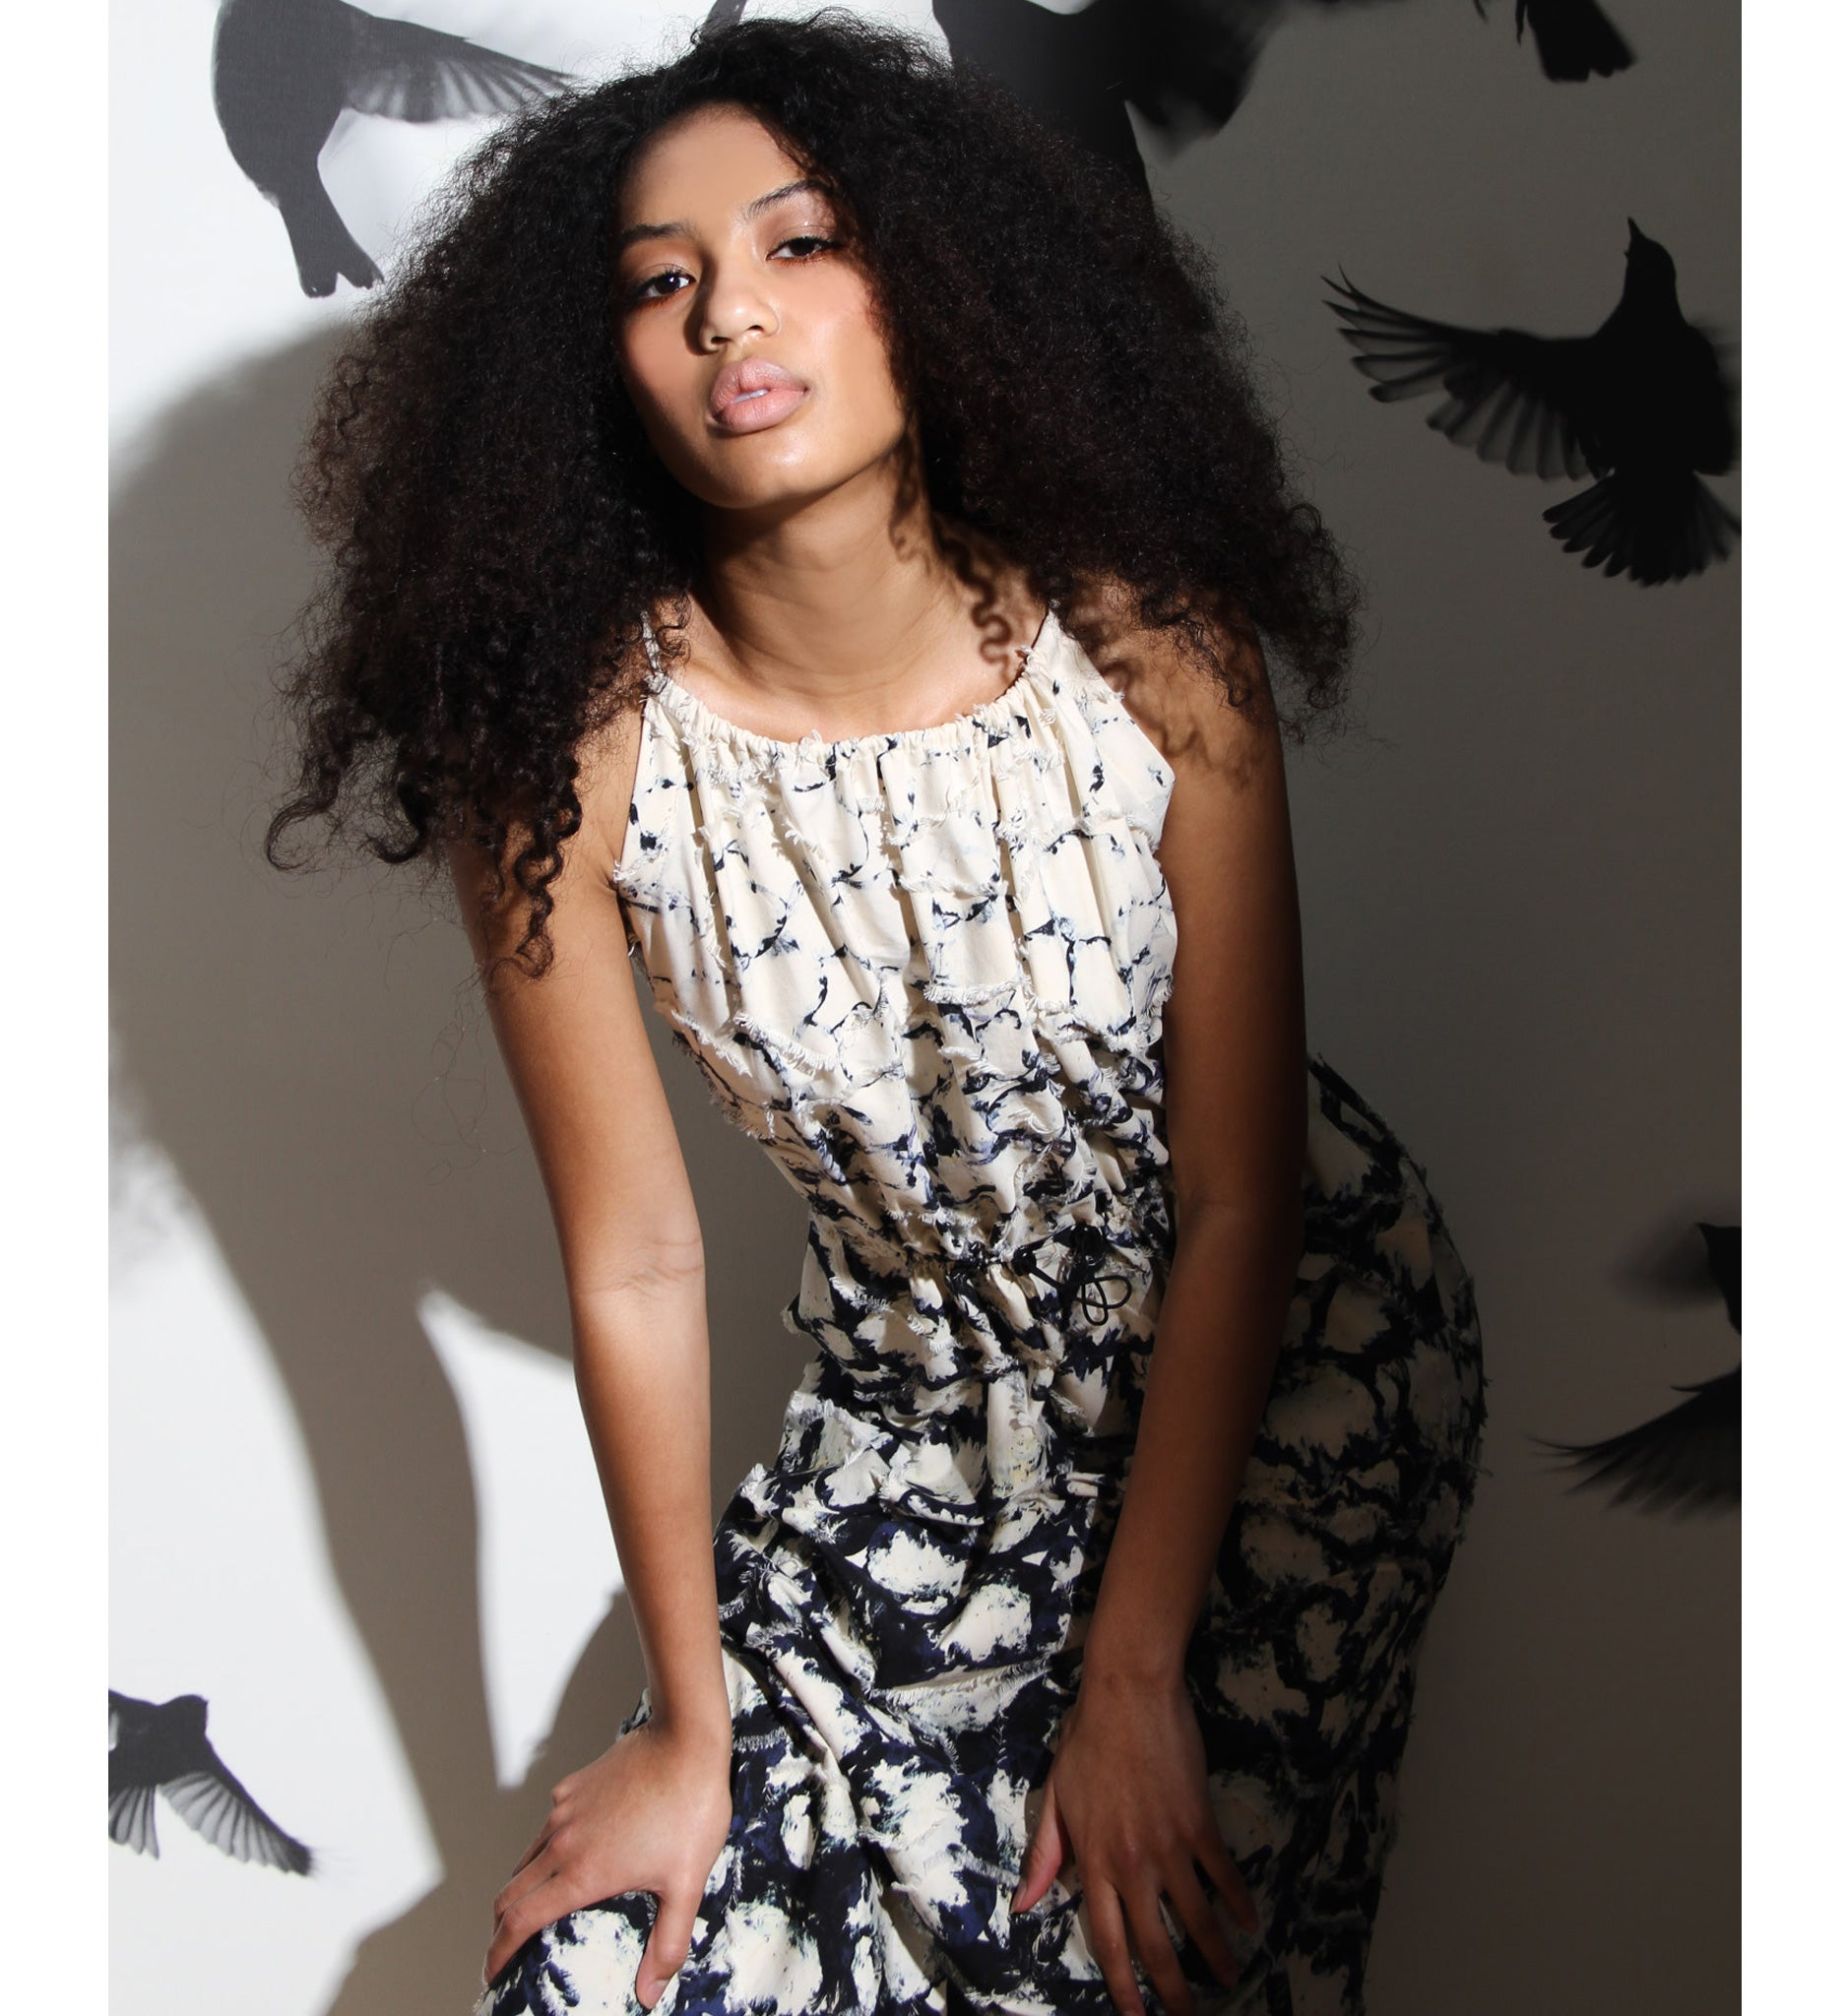 Floral tank dress in custom ivory and black jacquard fabric by Anntian